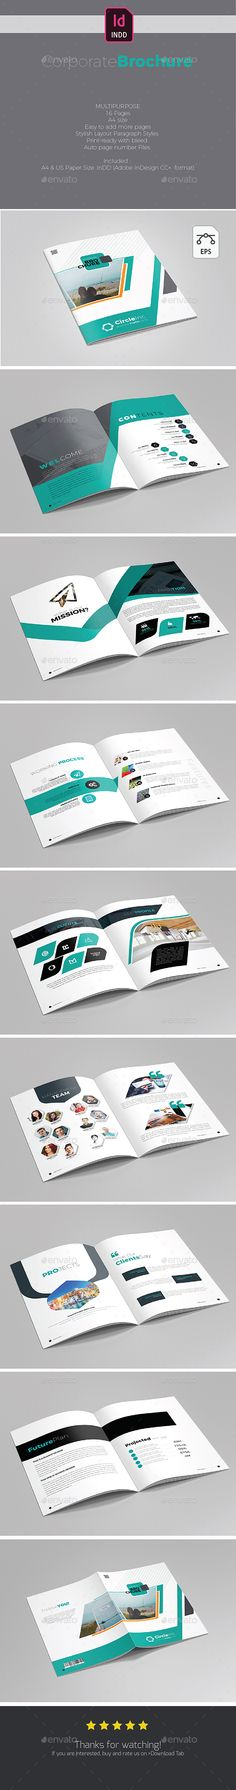 Creative Brochure Template InDesign INDD - 16 Pages A4 and US Letter Size